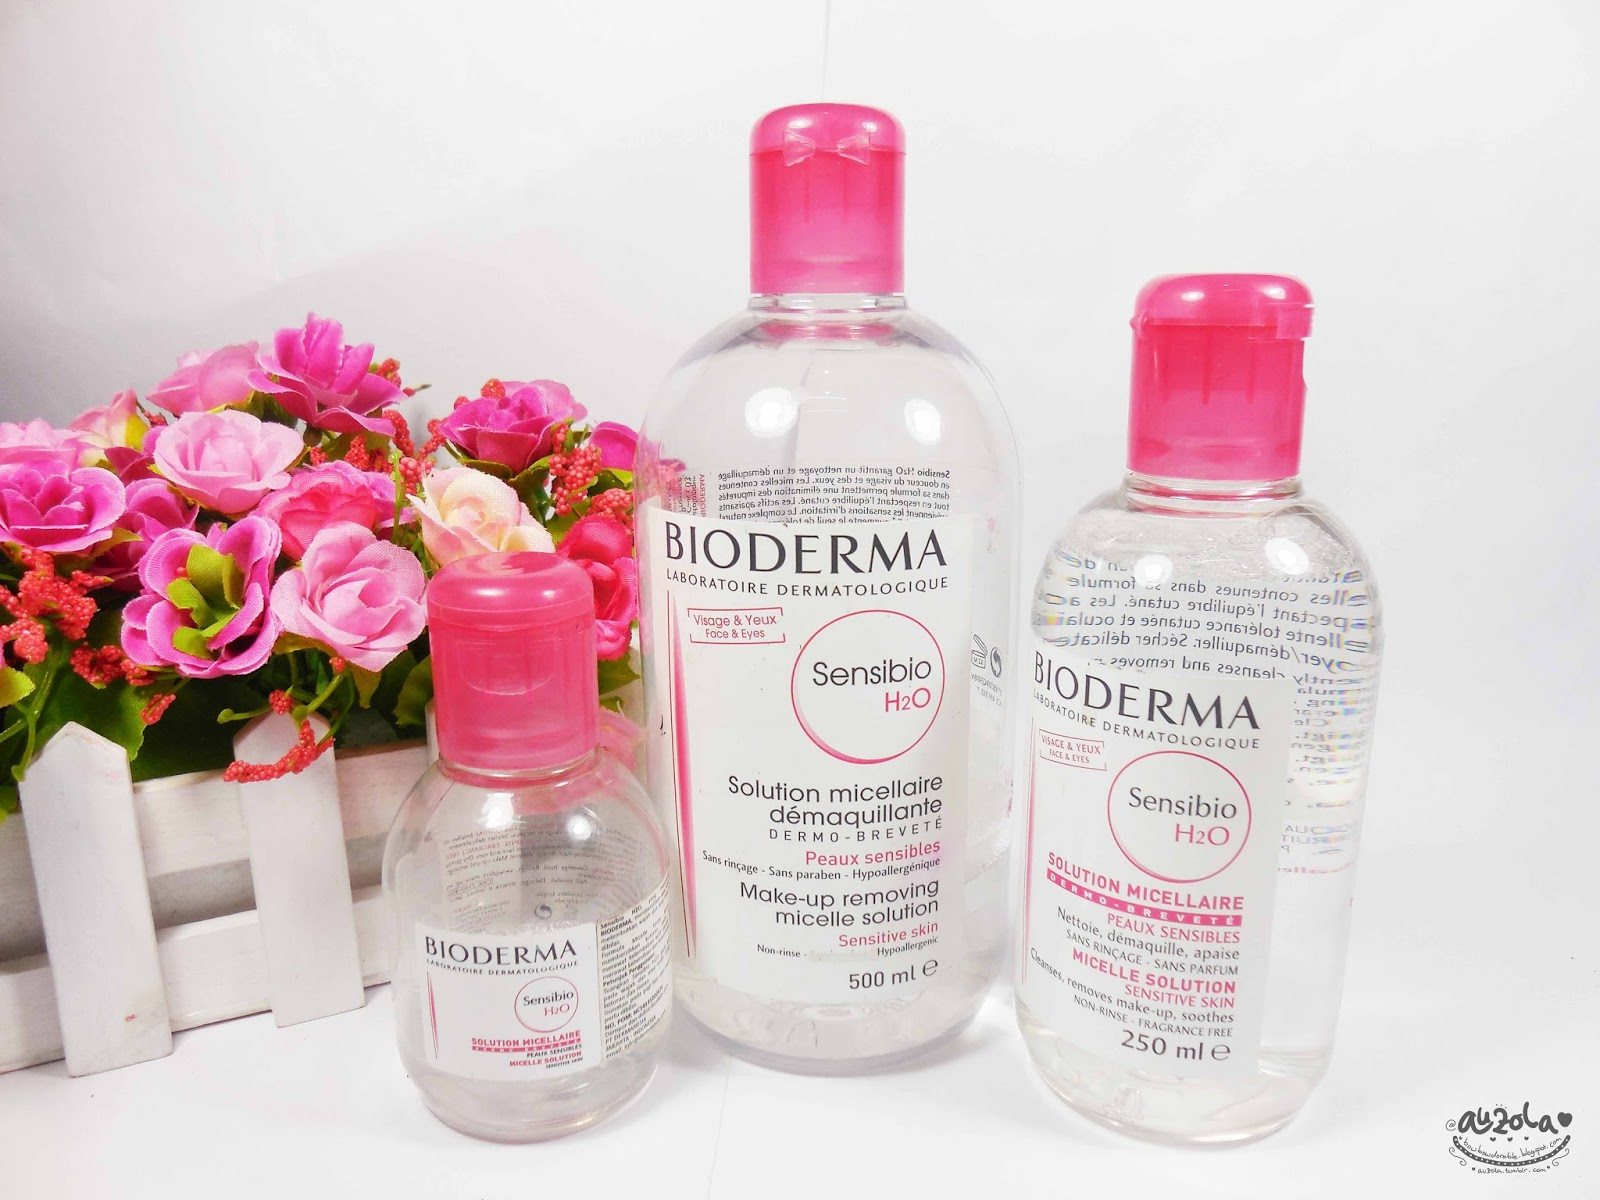 Rainbowdorable By Auzola Indonesian Beauty Blogger Review Bioderma Sebium H2o 500ml Brand Name Sensibio H20 Content100ml 250ml Made In France Price Idr 132k 219k 319k Around Usd 13 20 30